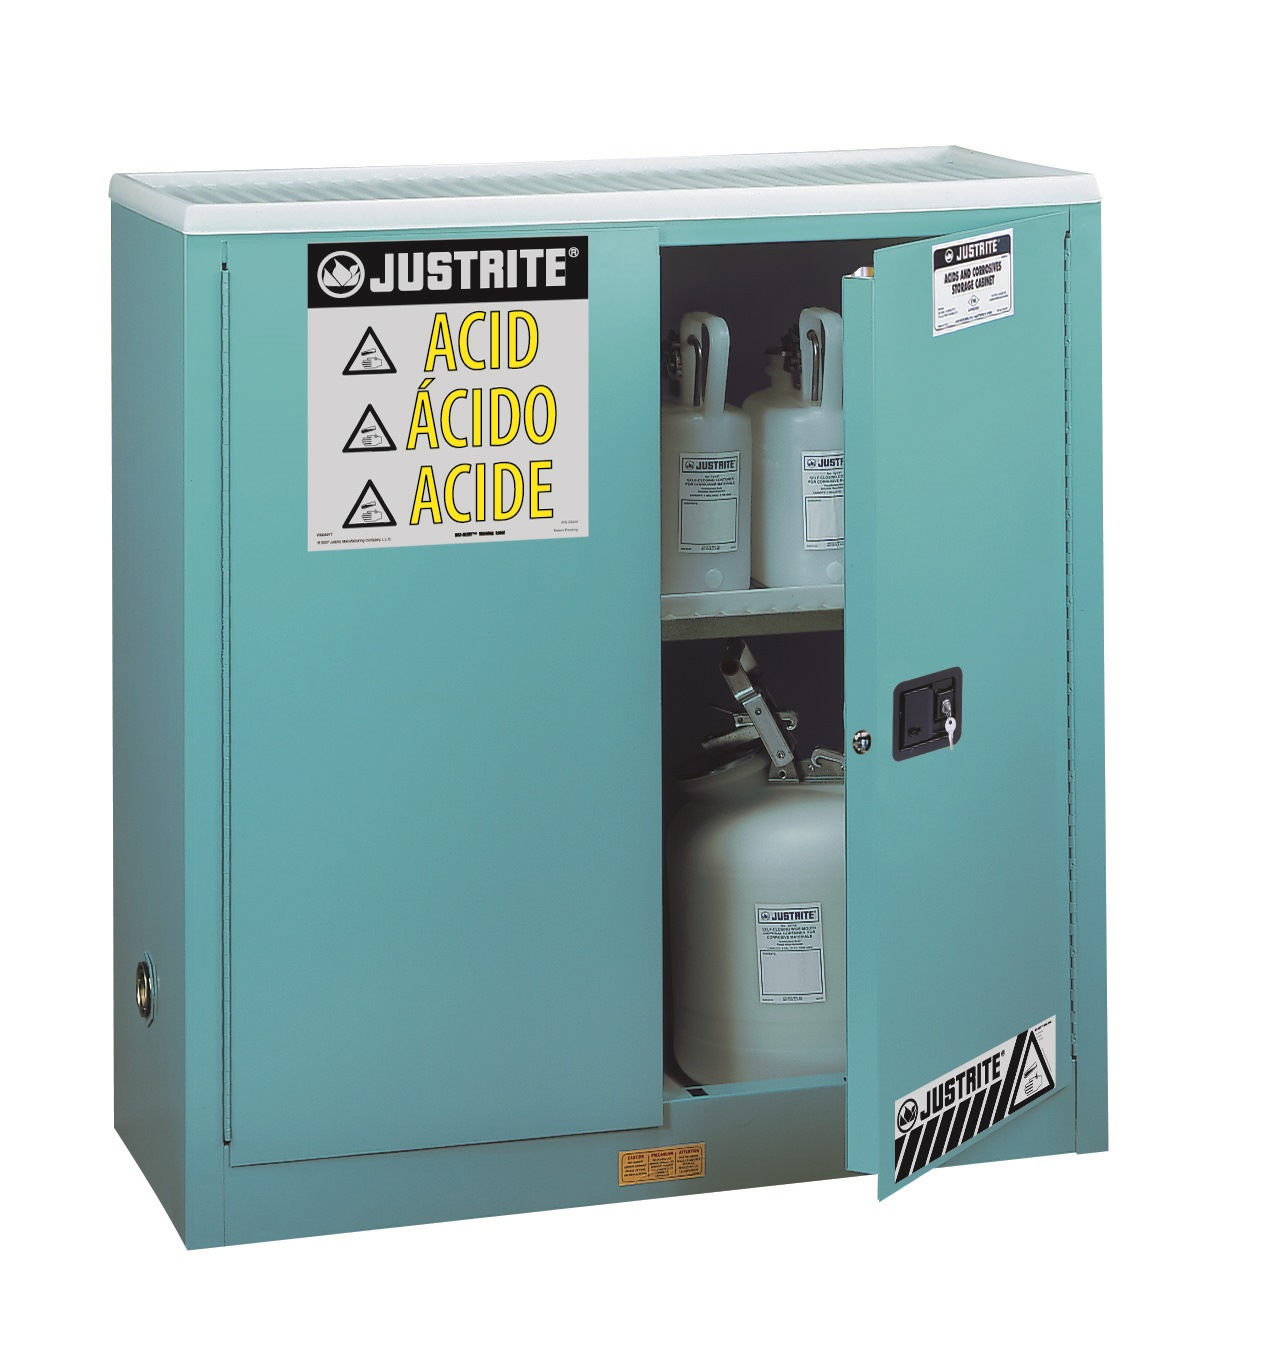 JUSTRITE 30 GAL SAFETY CABINET FOR CORROSIVES BLUE MANUAL JUM893002